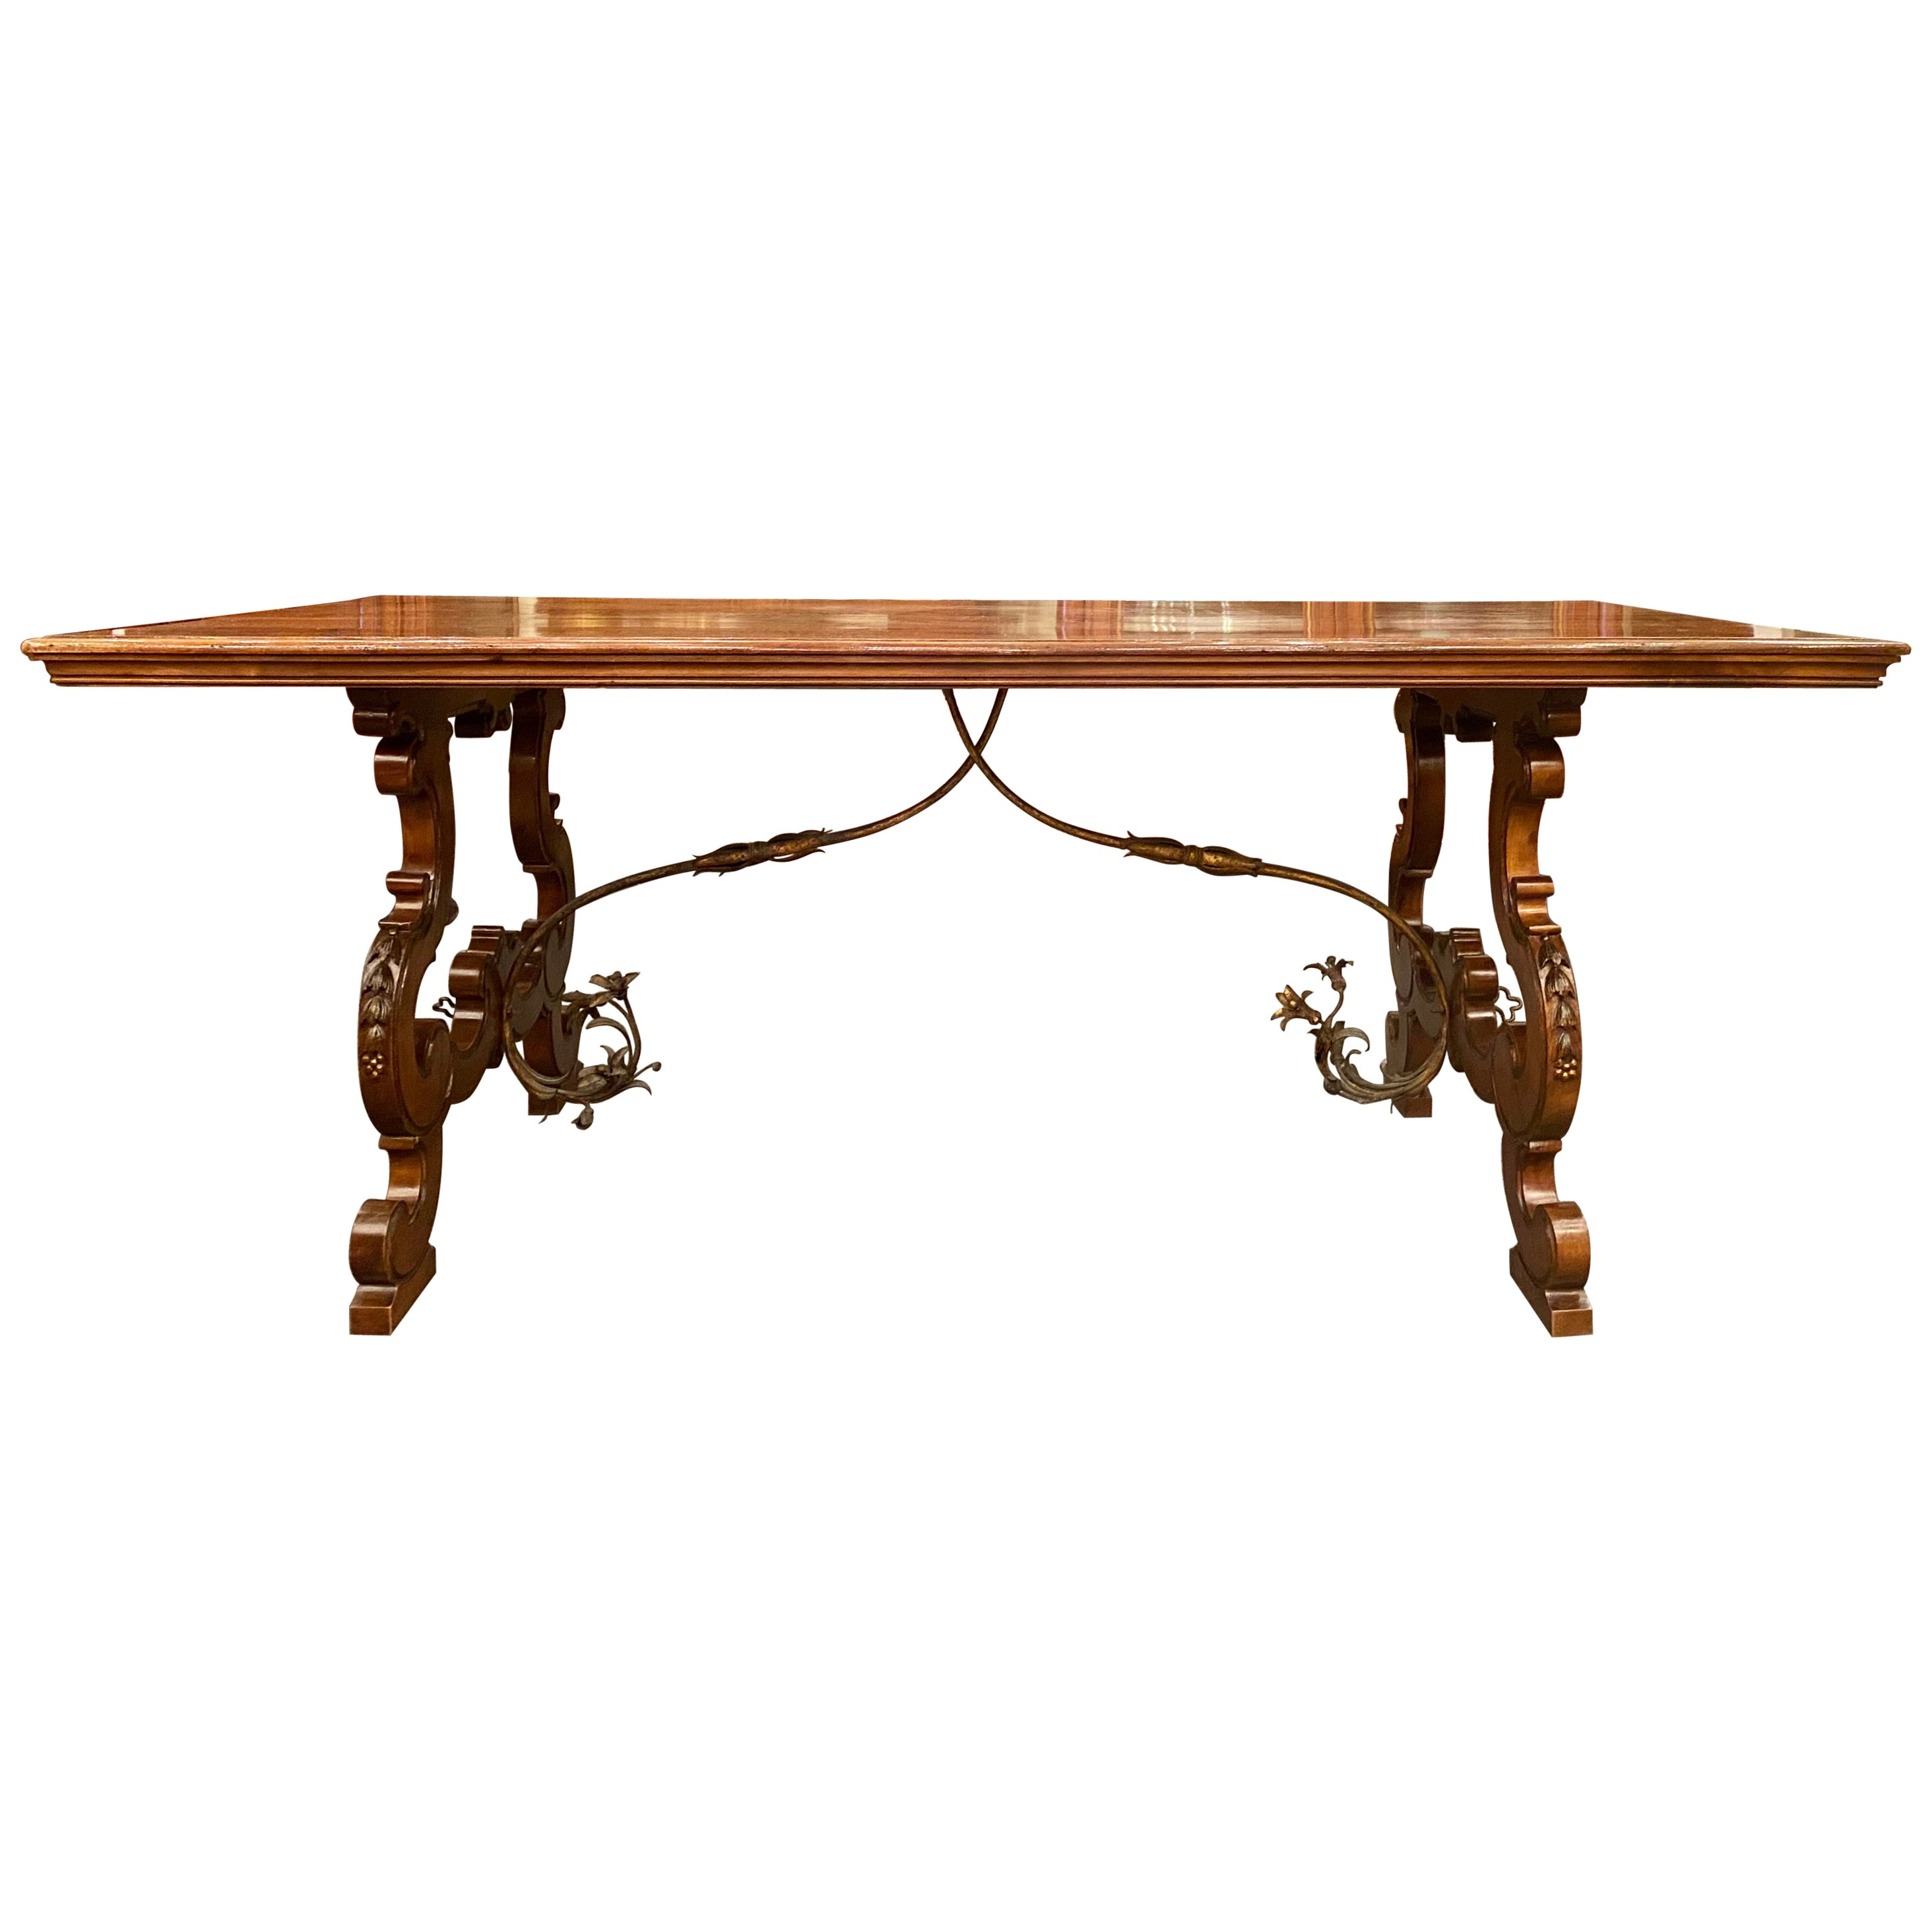 Antique French Walnut Trestle Dining Table with Iron Work Detail circa 1860-1880